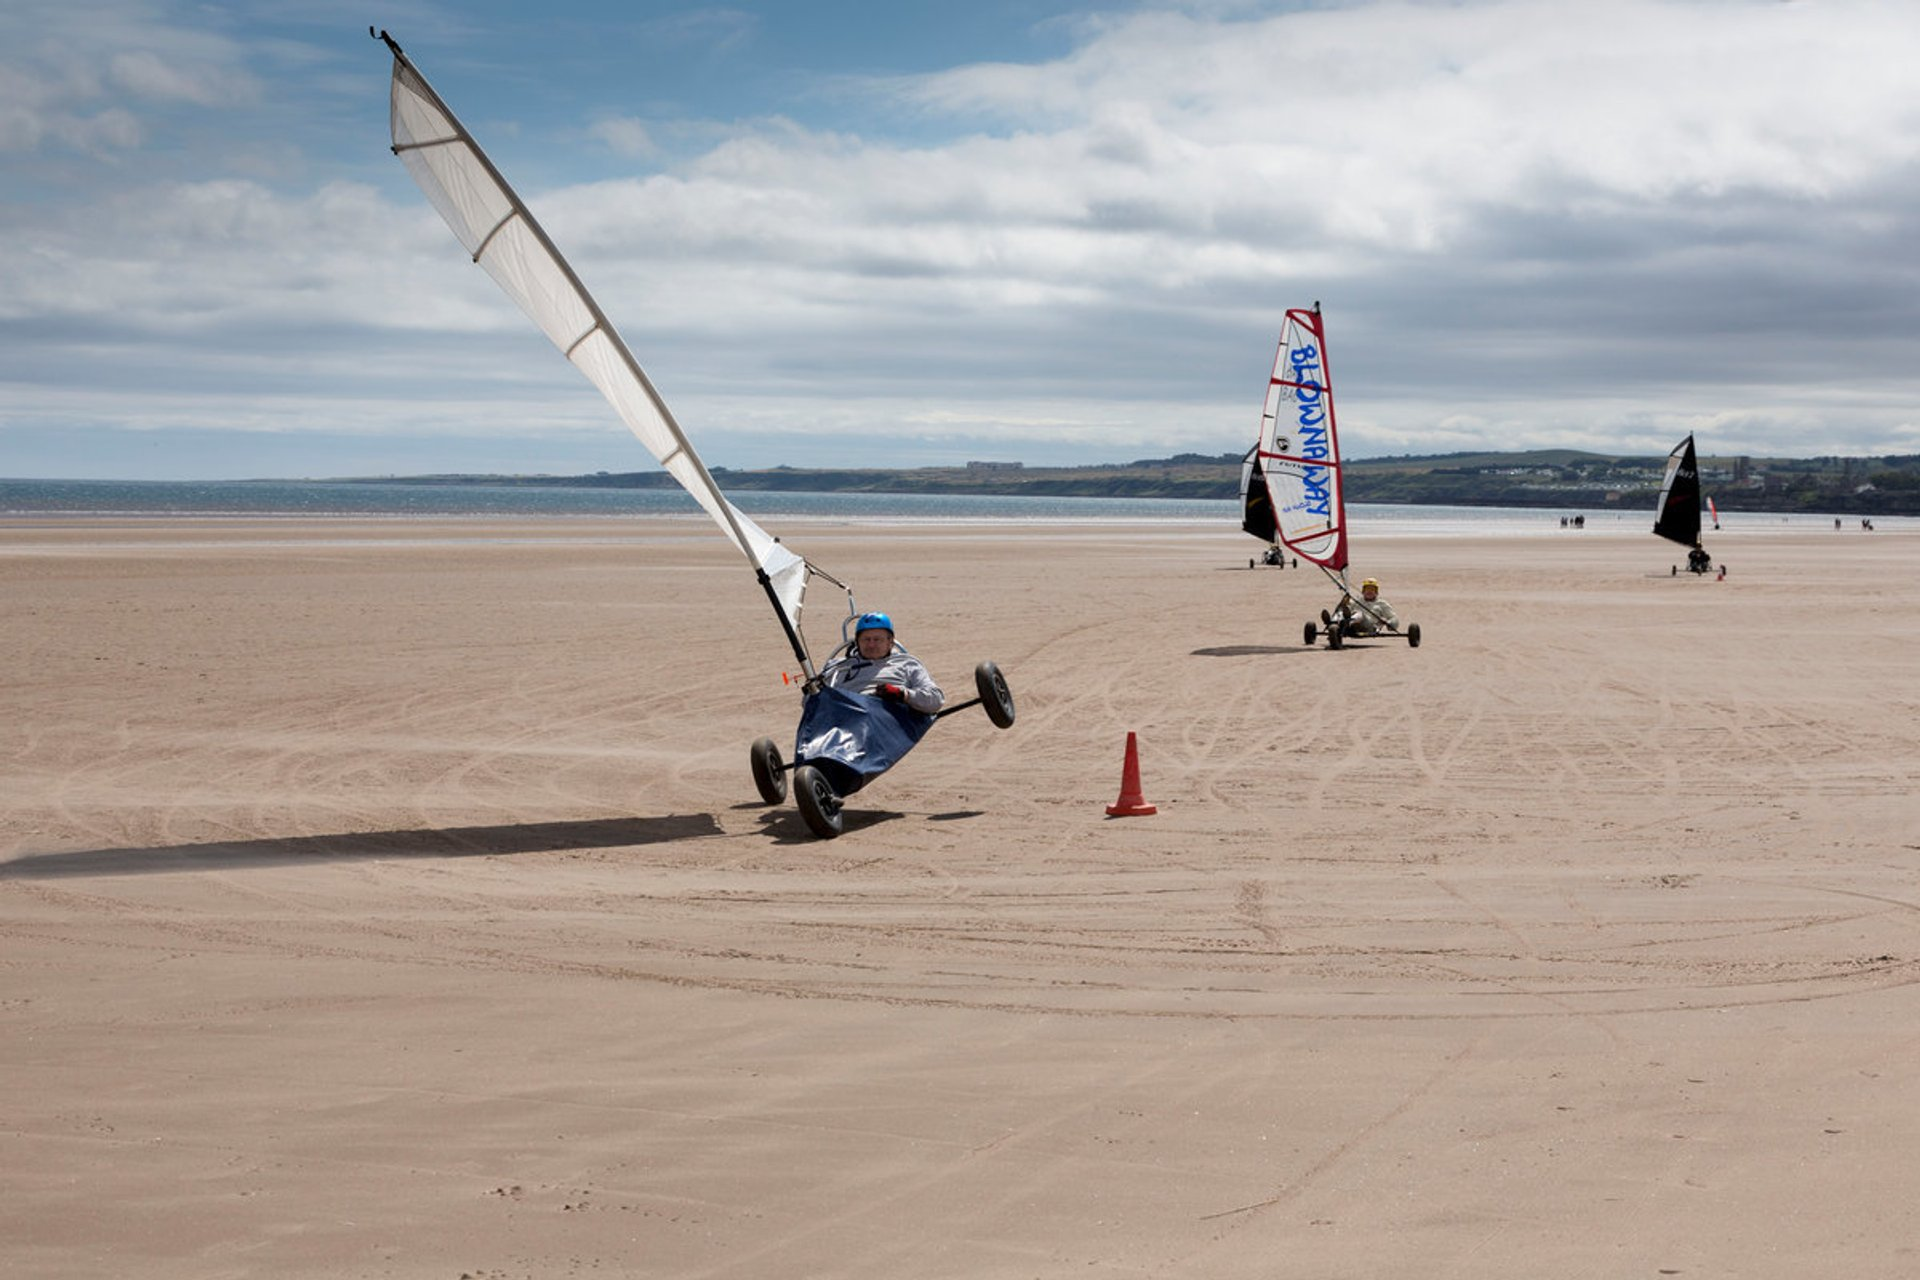 Land yachting on West Sands beach, St Andrews, Fife 2019